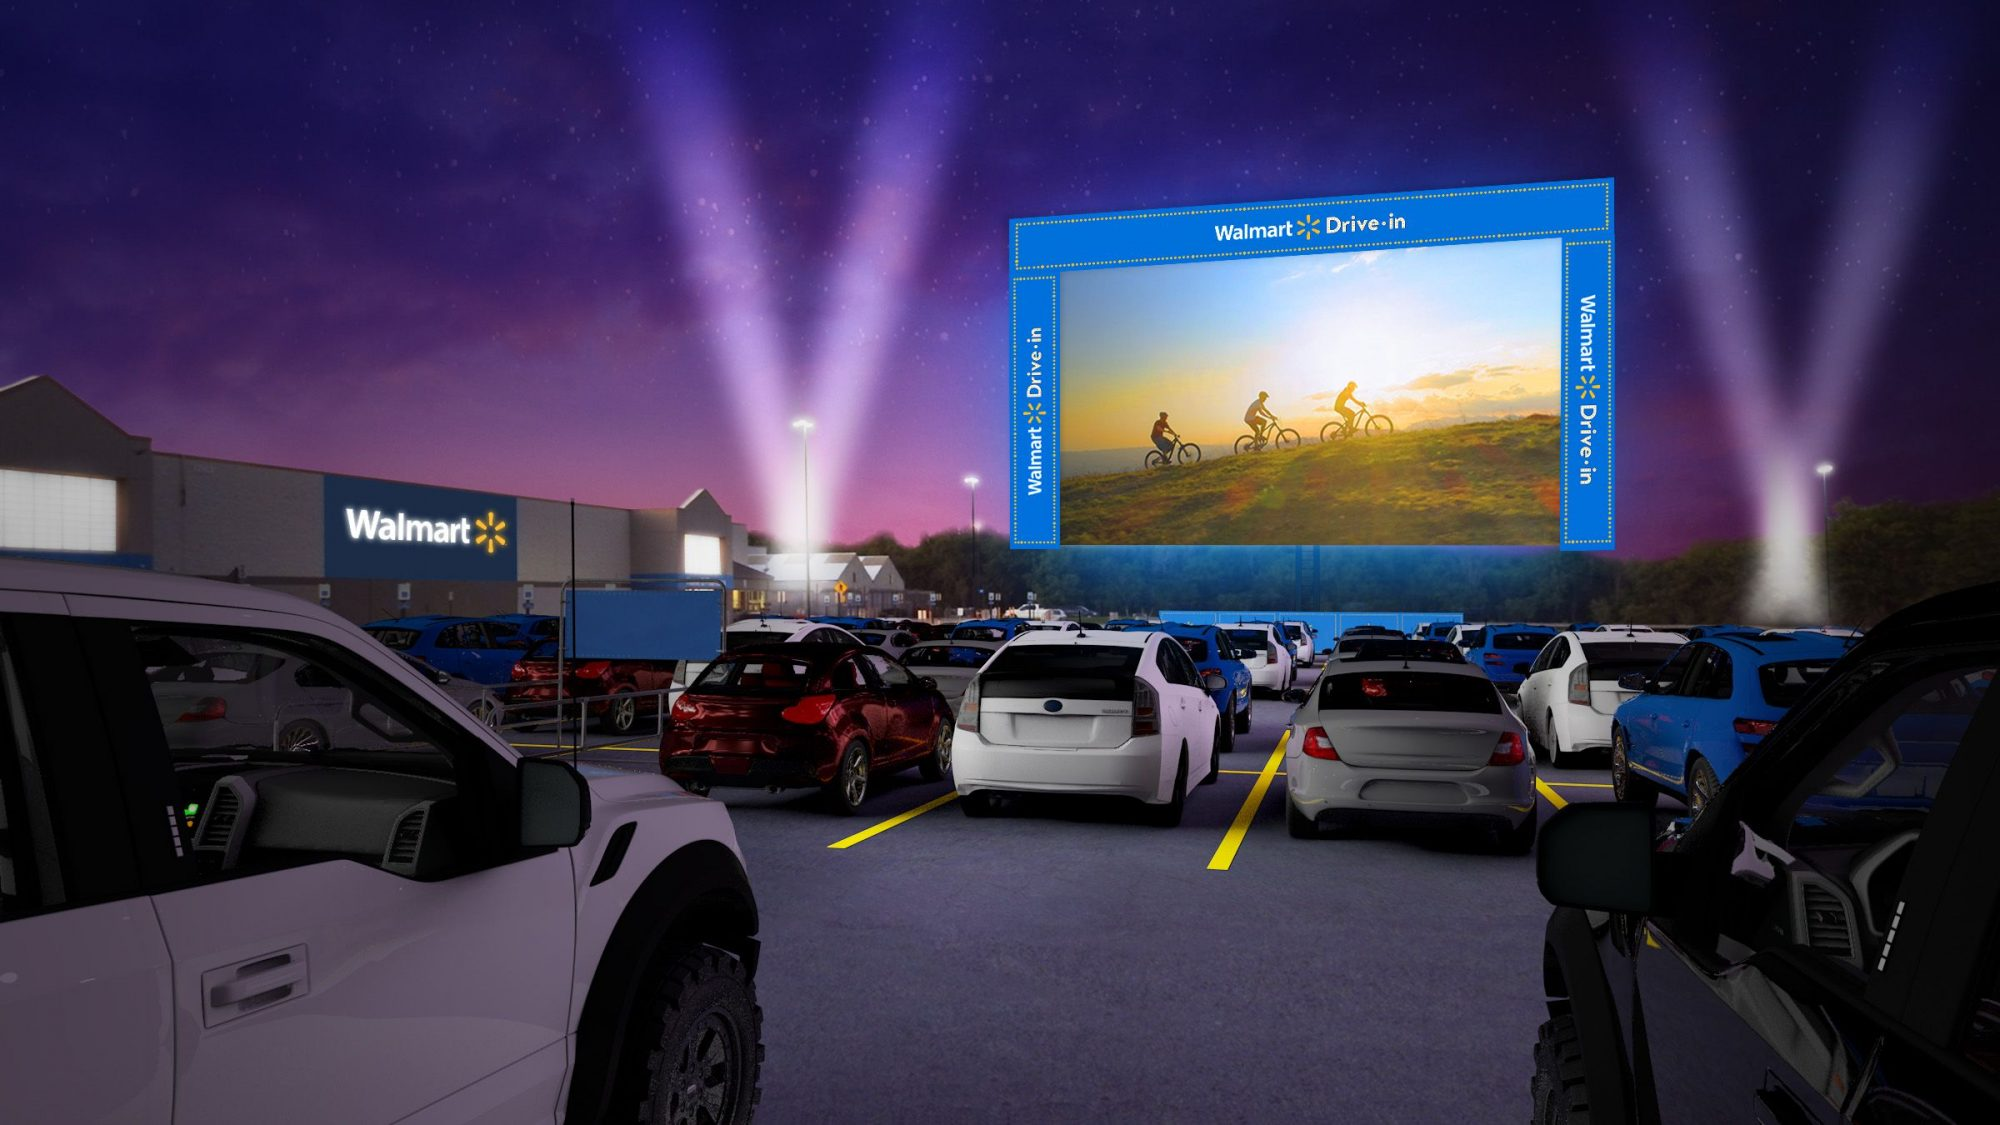 Walmart hosts free drive-in movie nights through October 2020